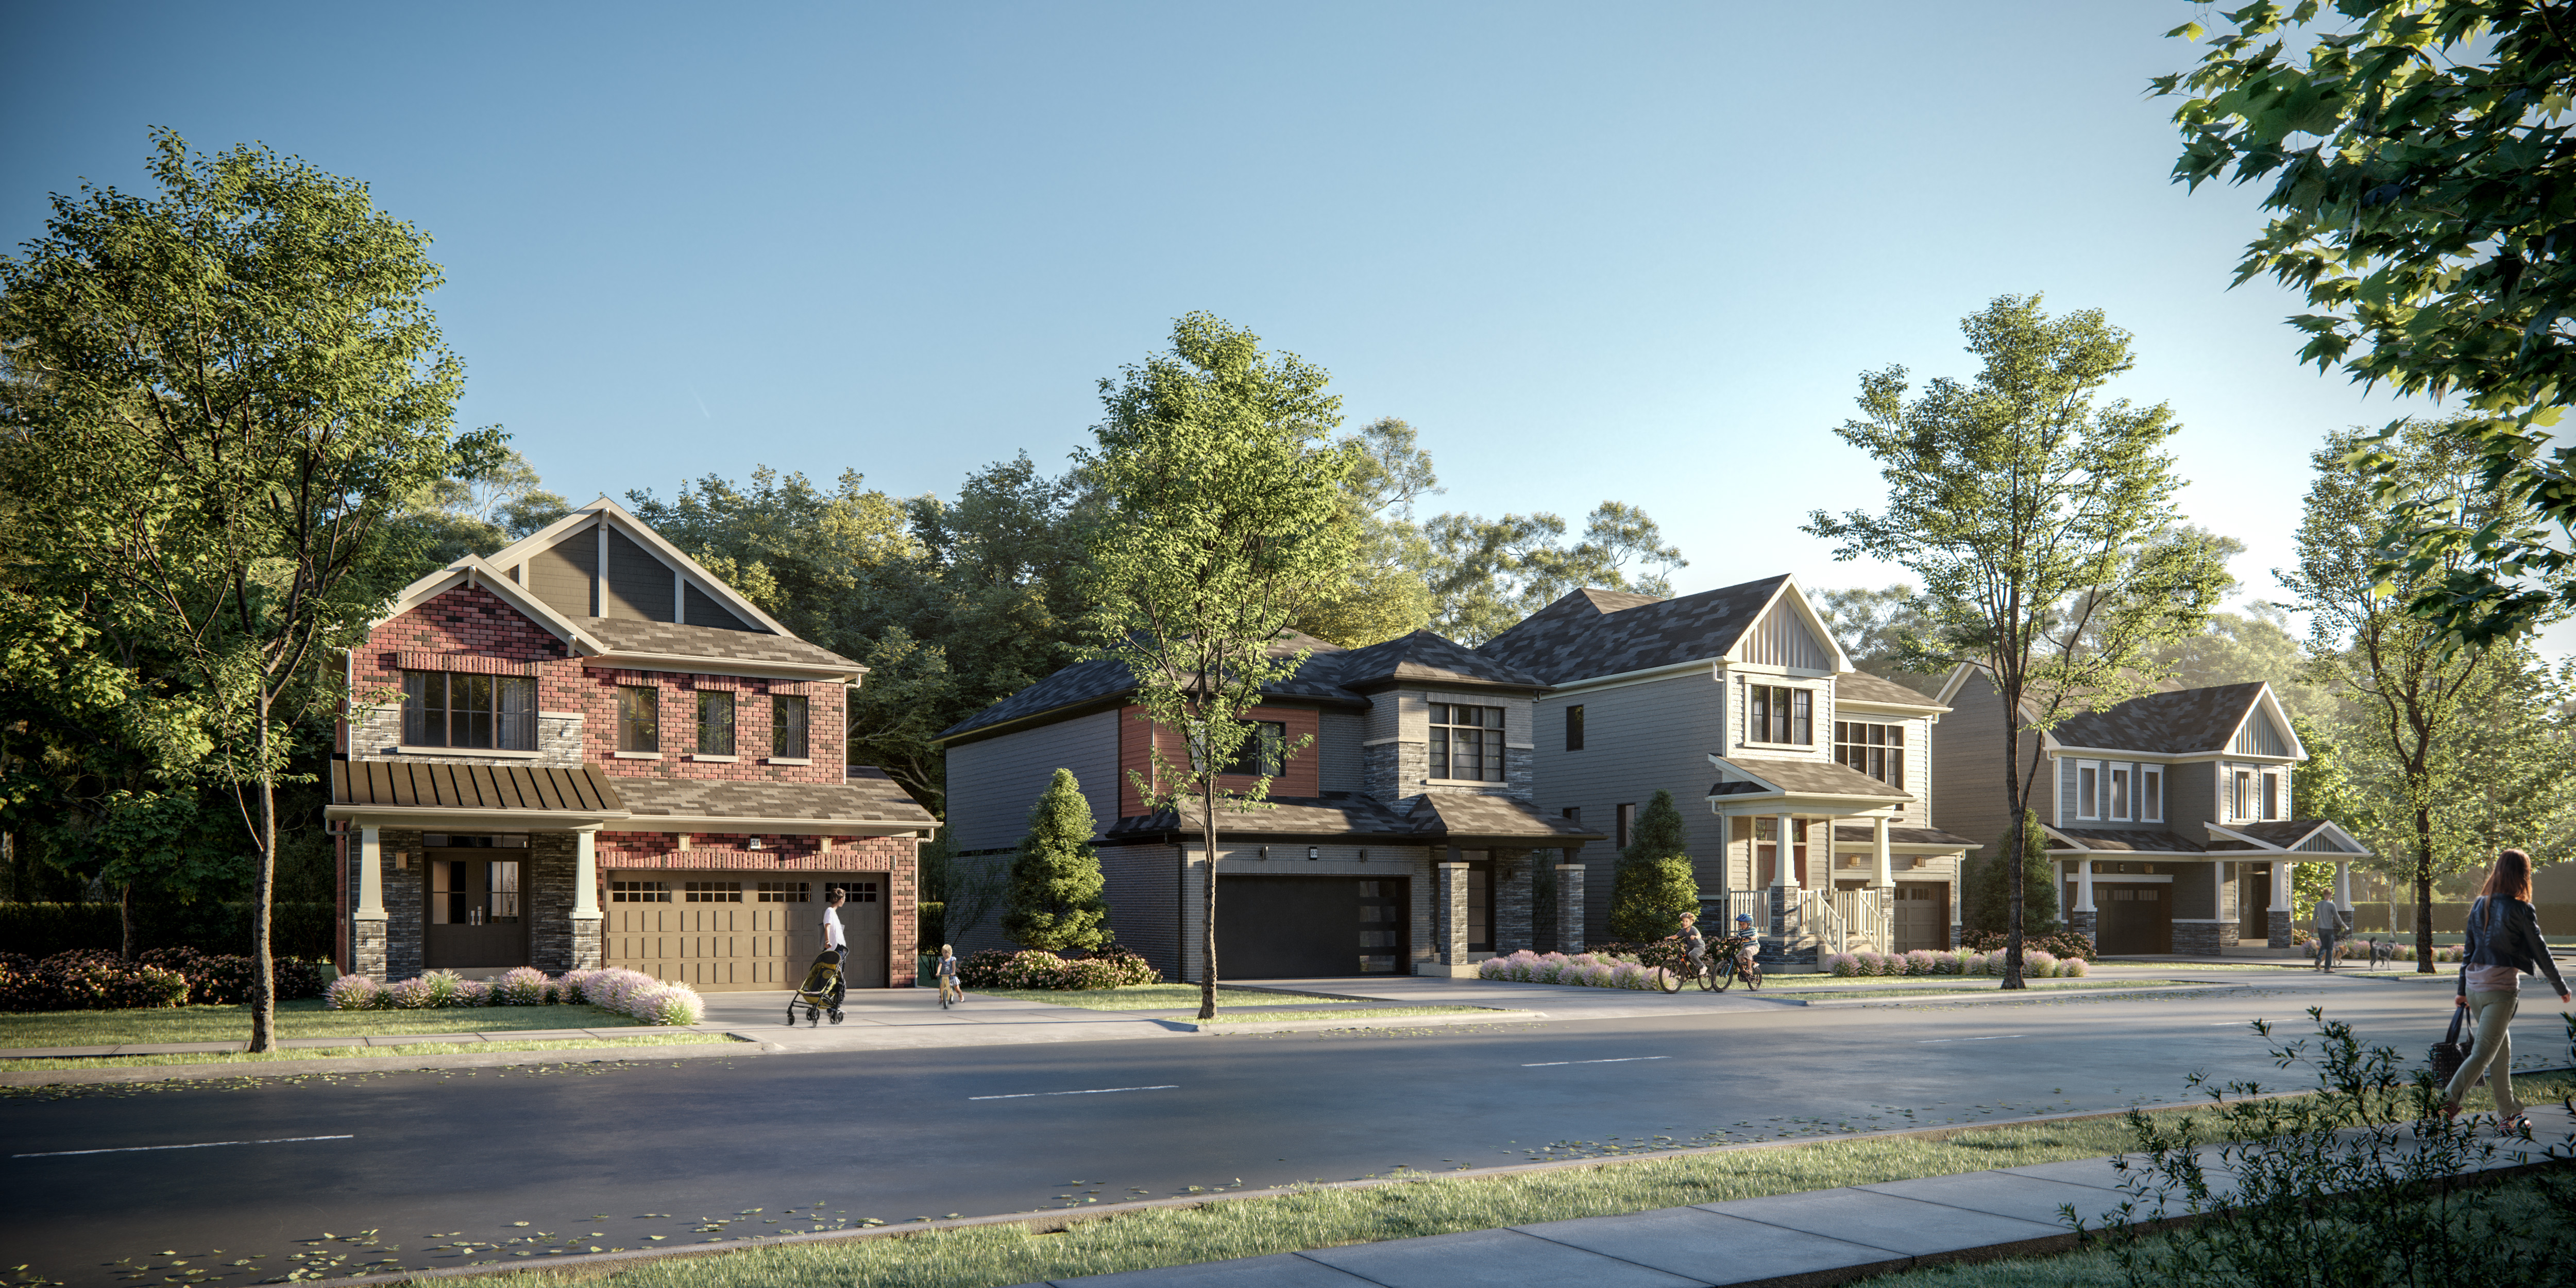 Empire Communities Announces First Master-Planned Community in Hagersville, Offering New Product for Families